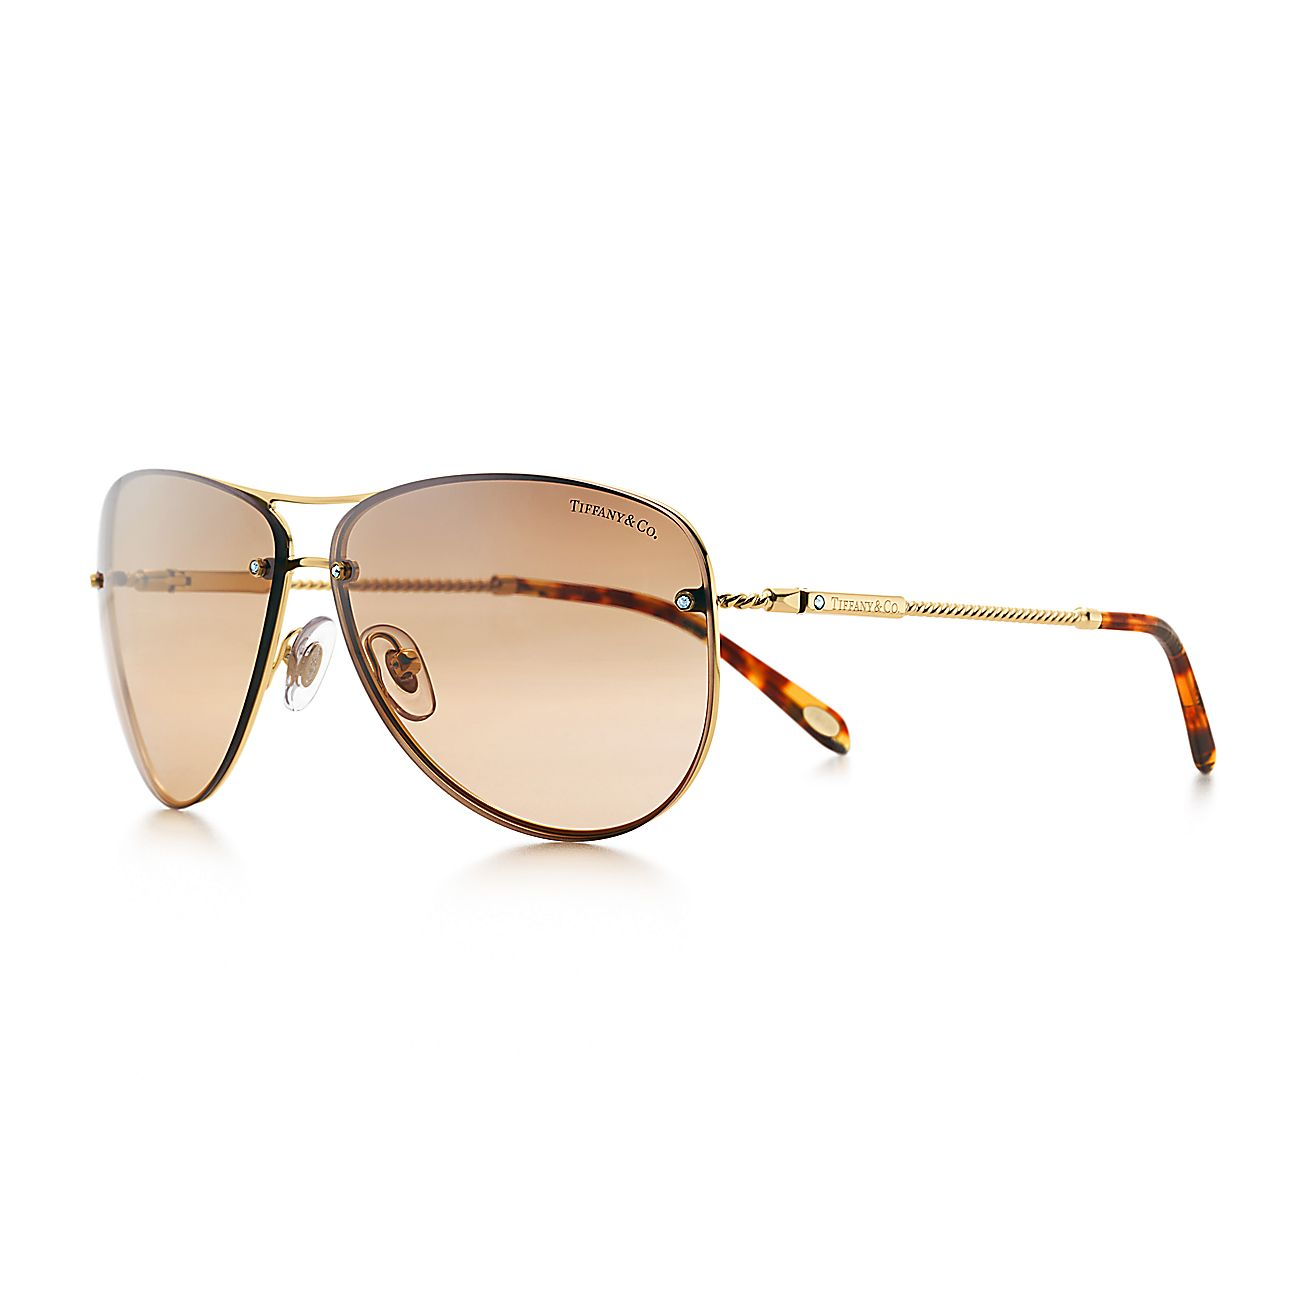 Tiffany Twist:Aviator Sunglasses